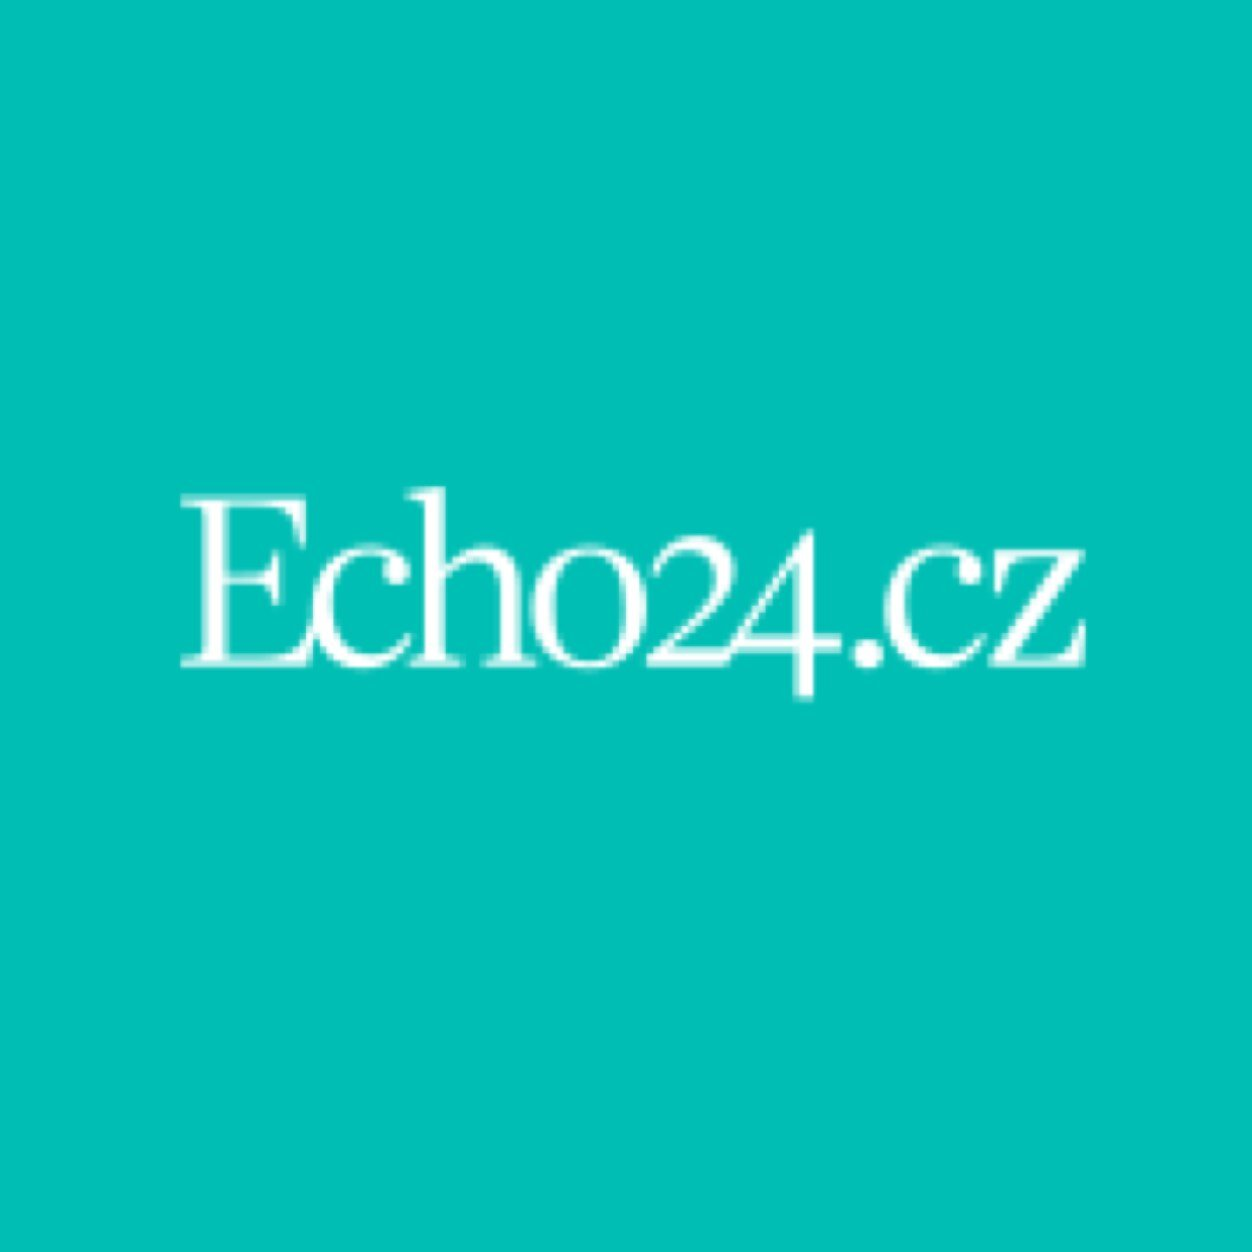 echo24-logo.jpeg